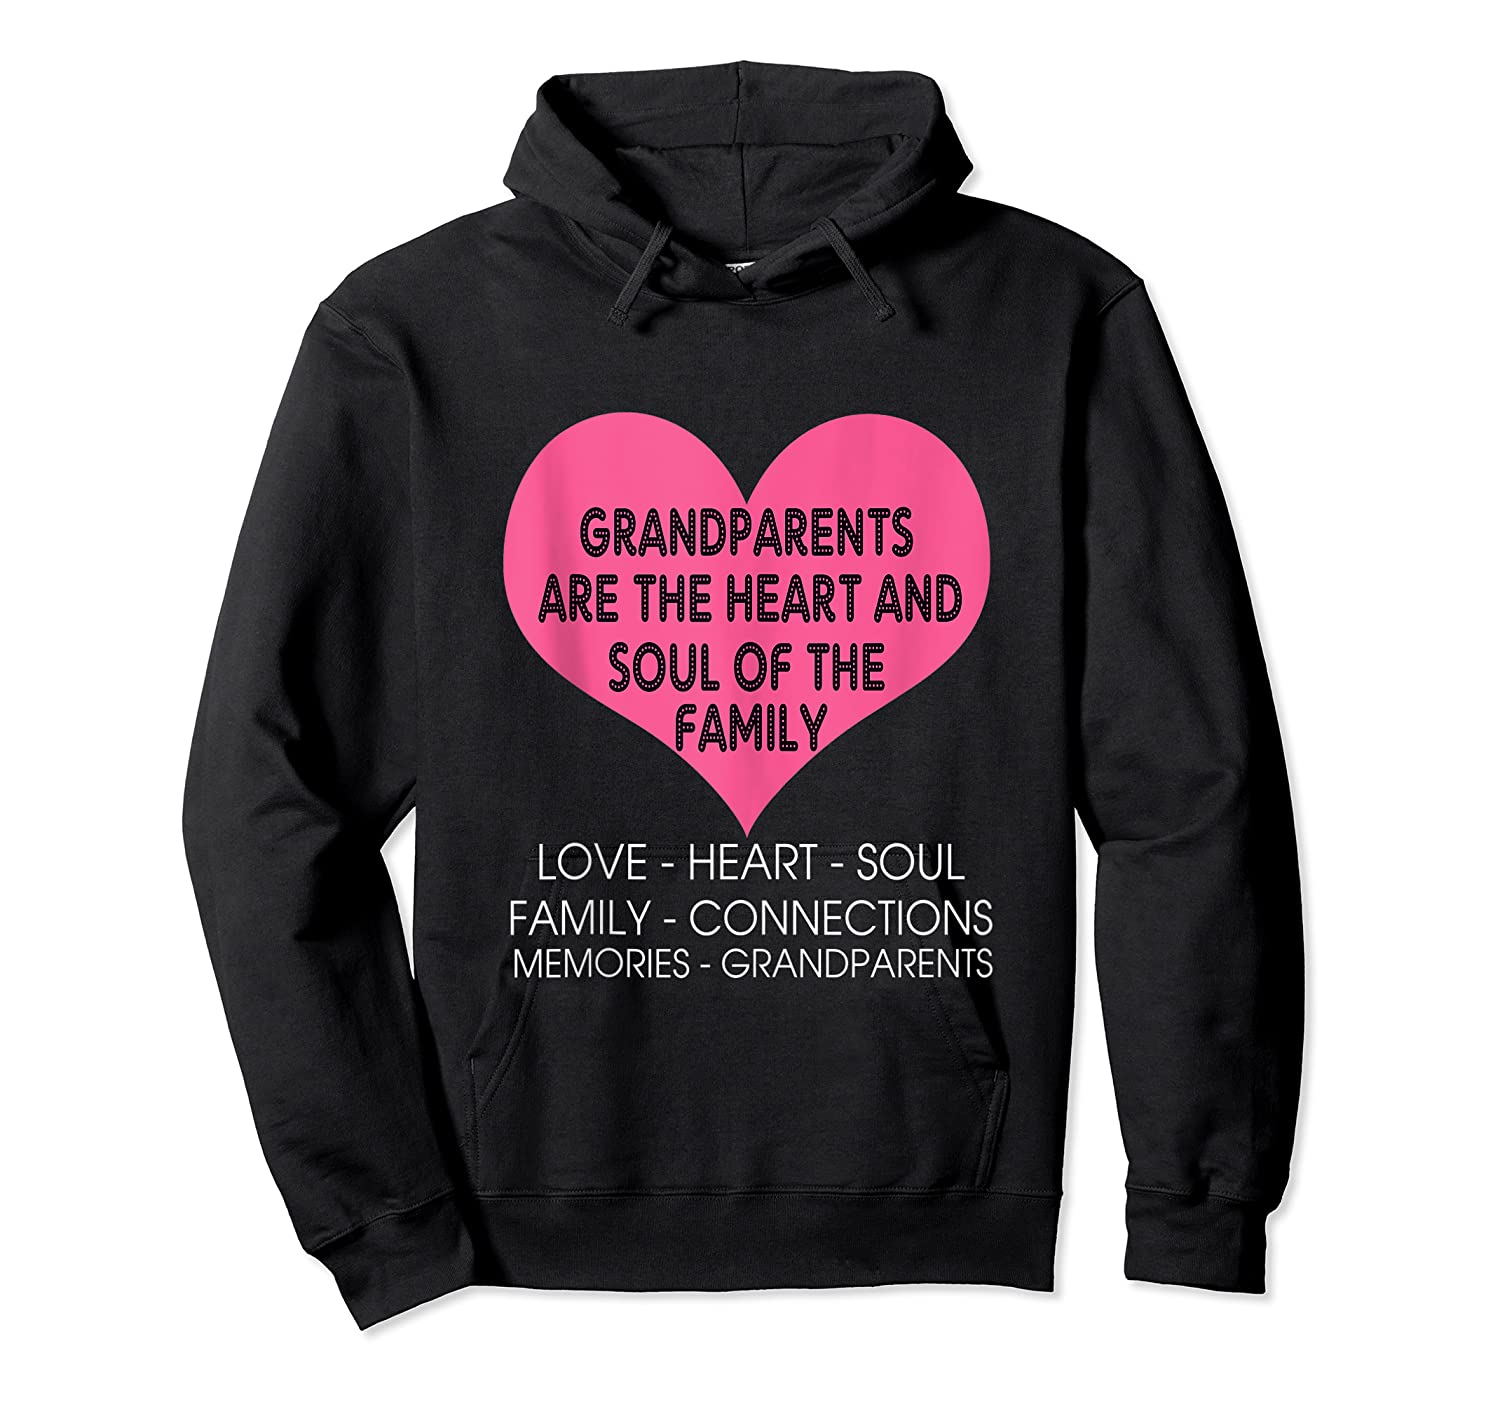 Grandparents Are The Heart And Soul Of The Family Tshirt Tank Top Unisex Pullover Hoodie